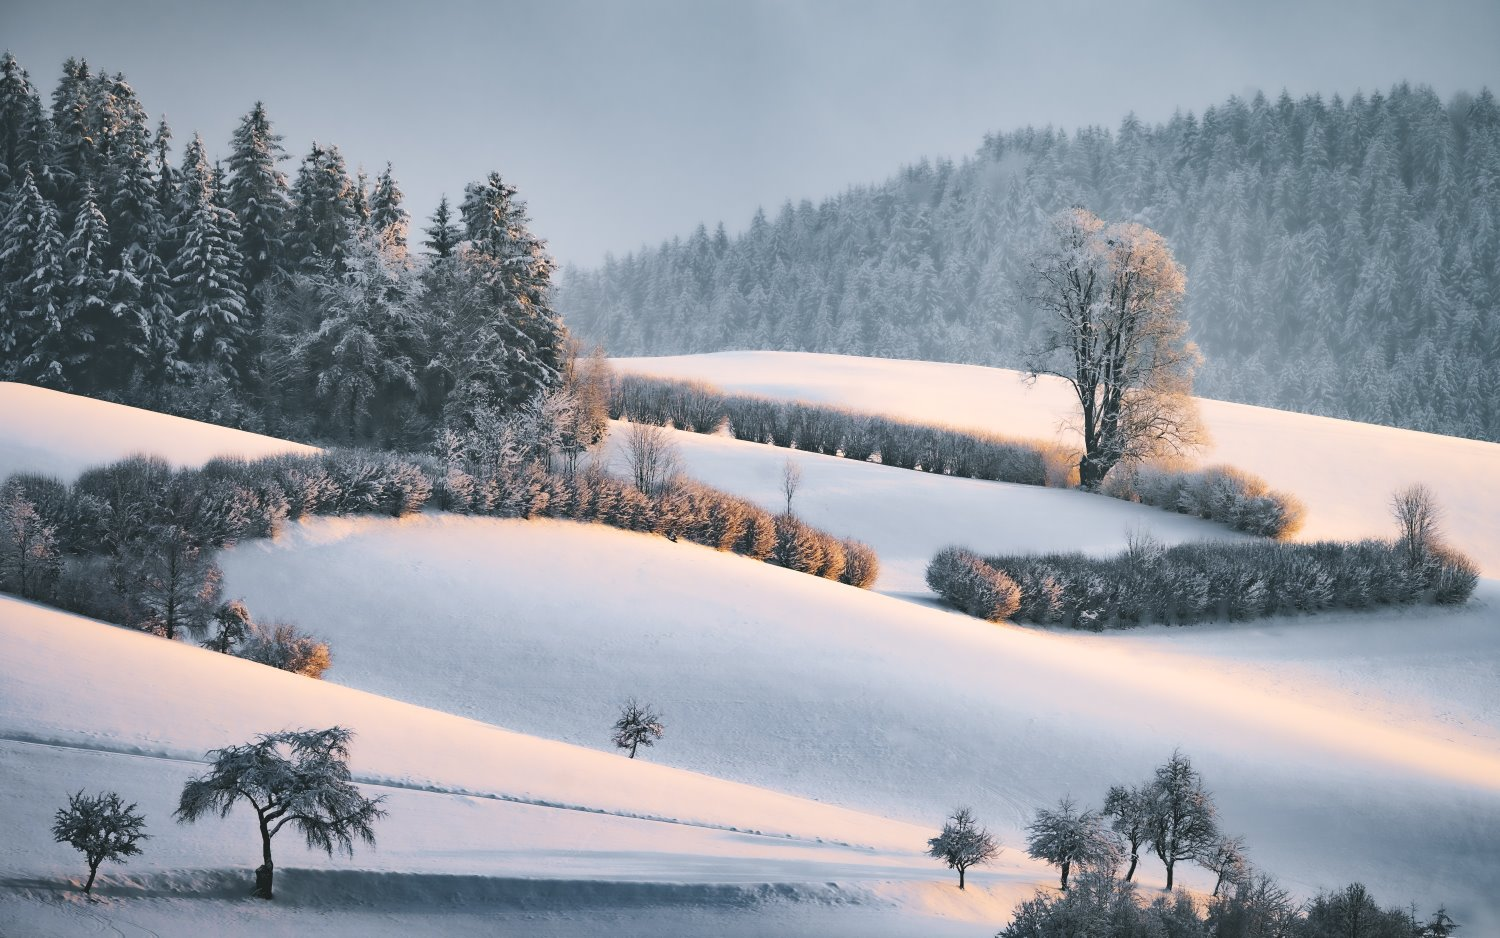 landscape photography tips snow at golden hour